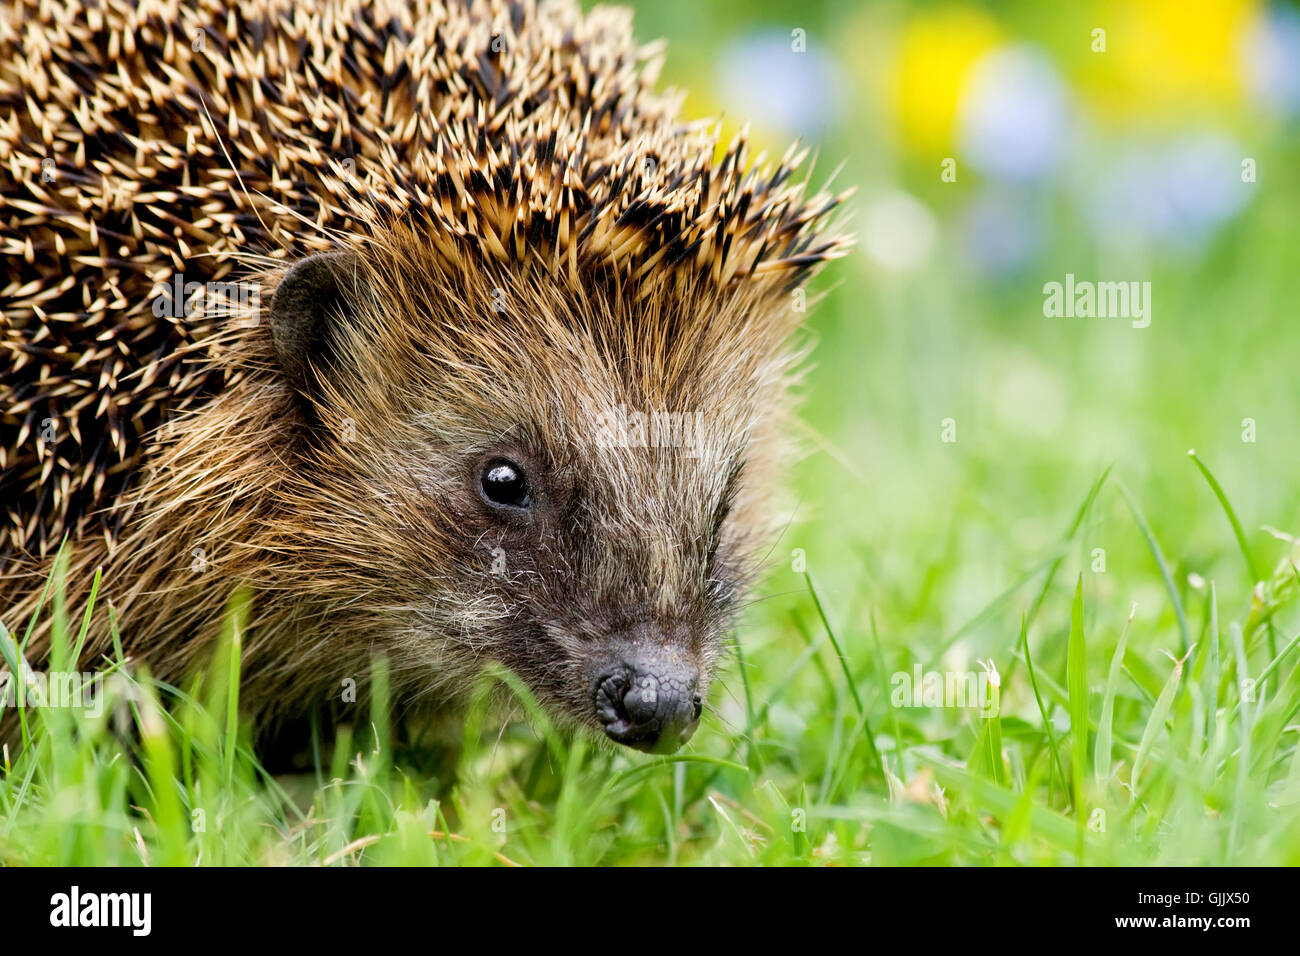 hedgehog portrait - Stock Image